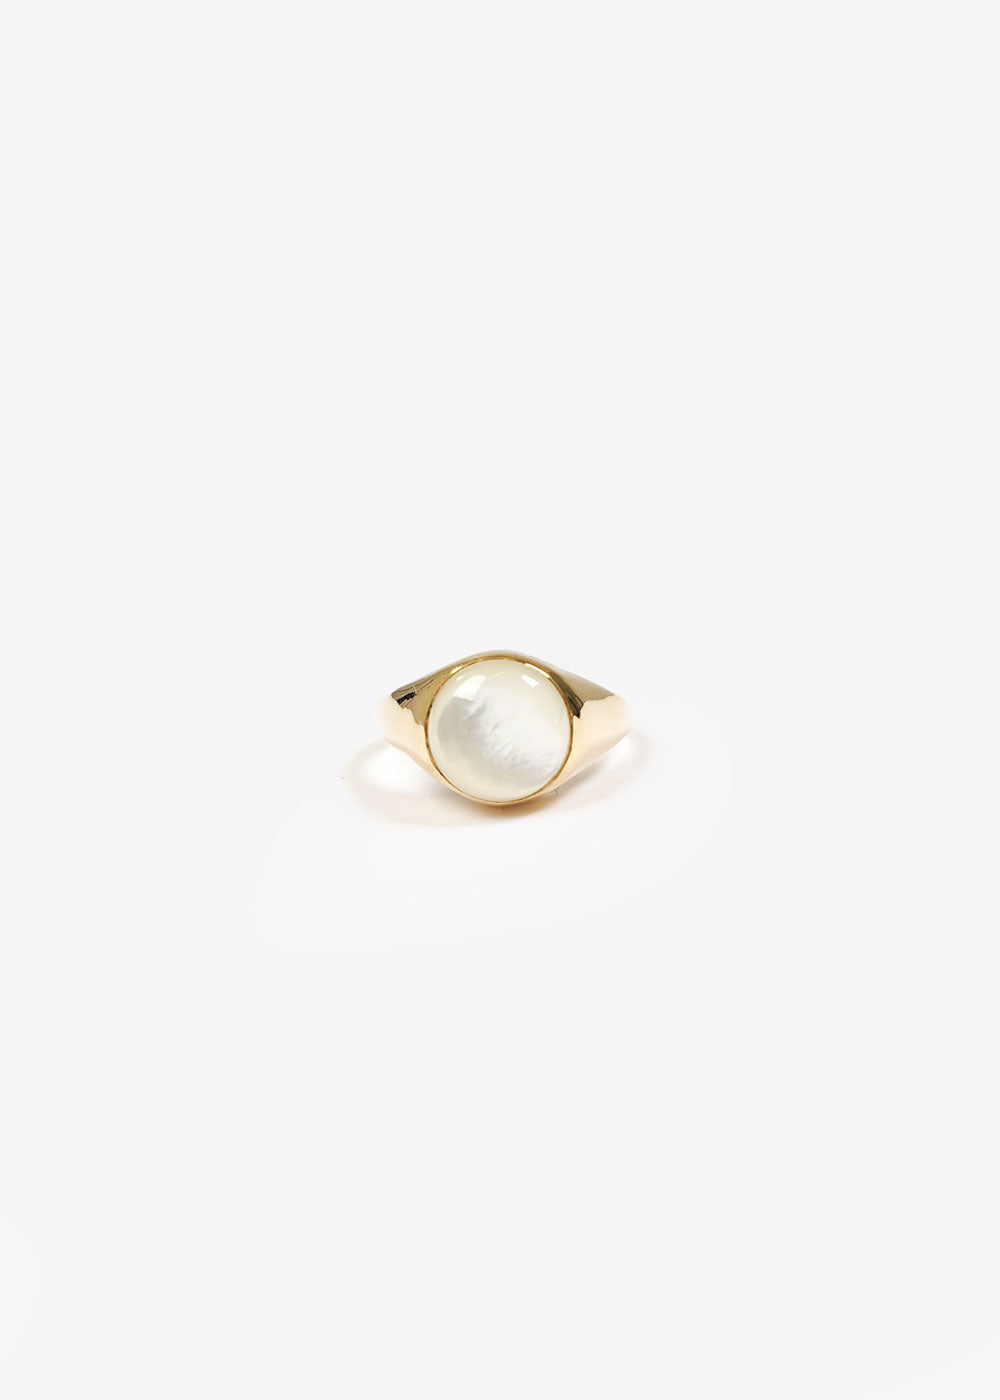 LUINY Luna Perla Ring No. 2 — Shop sustainable fashion and slow fashion at New Classics Studios